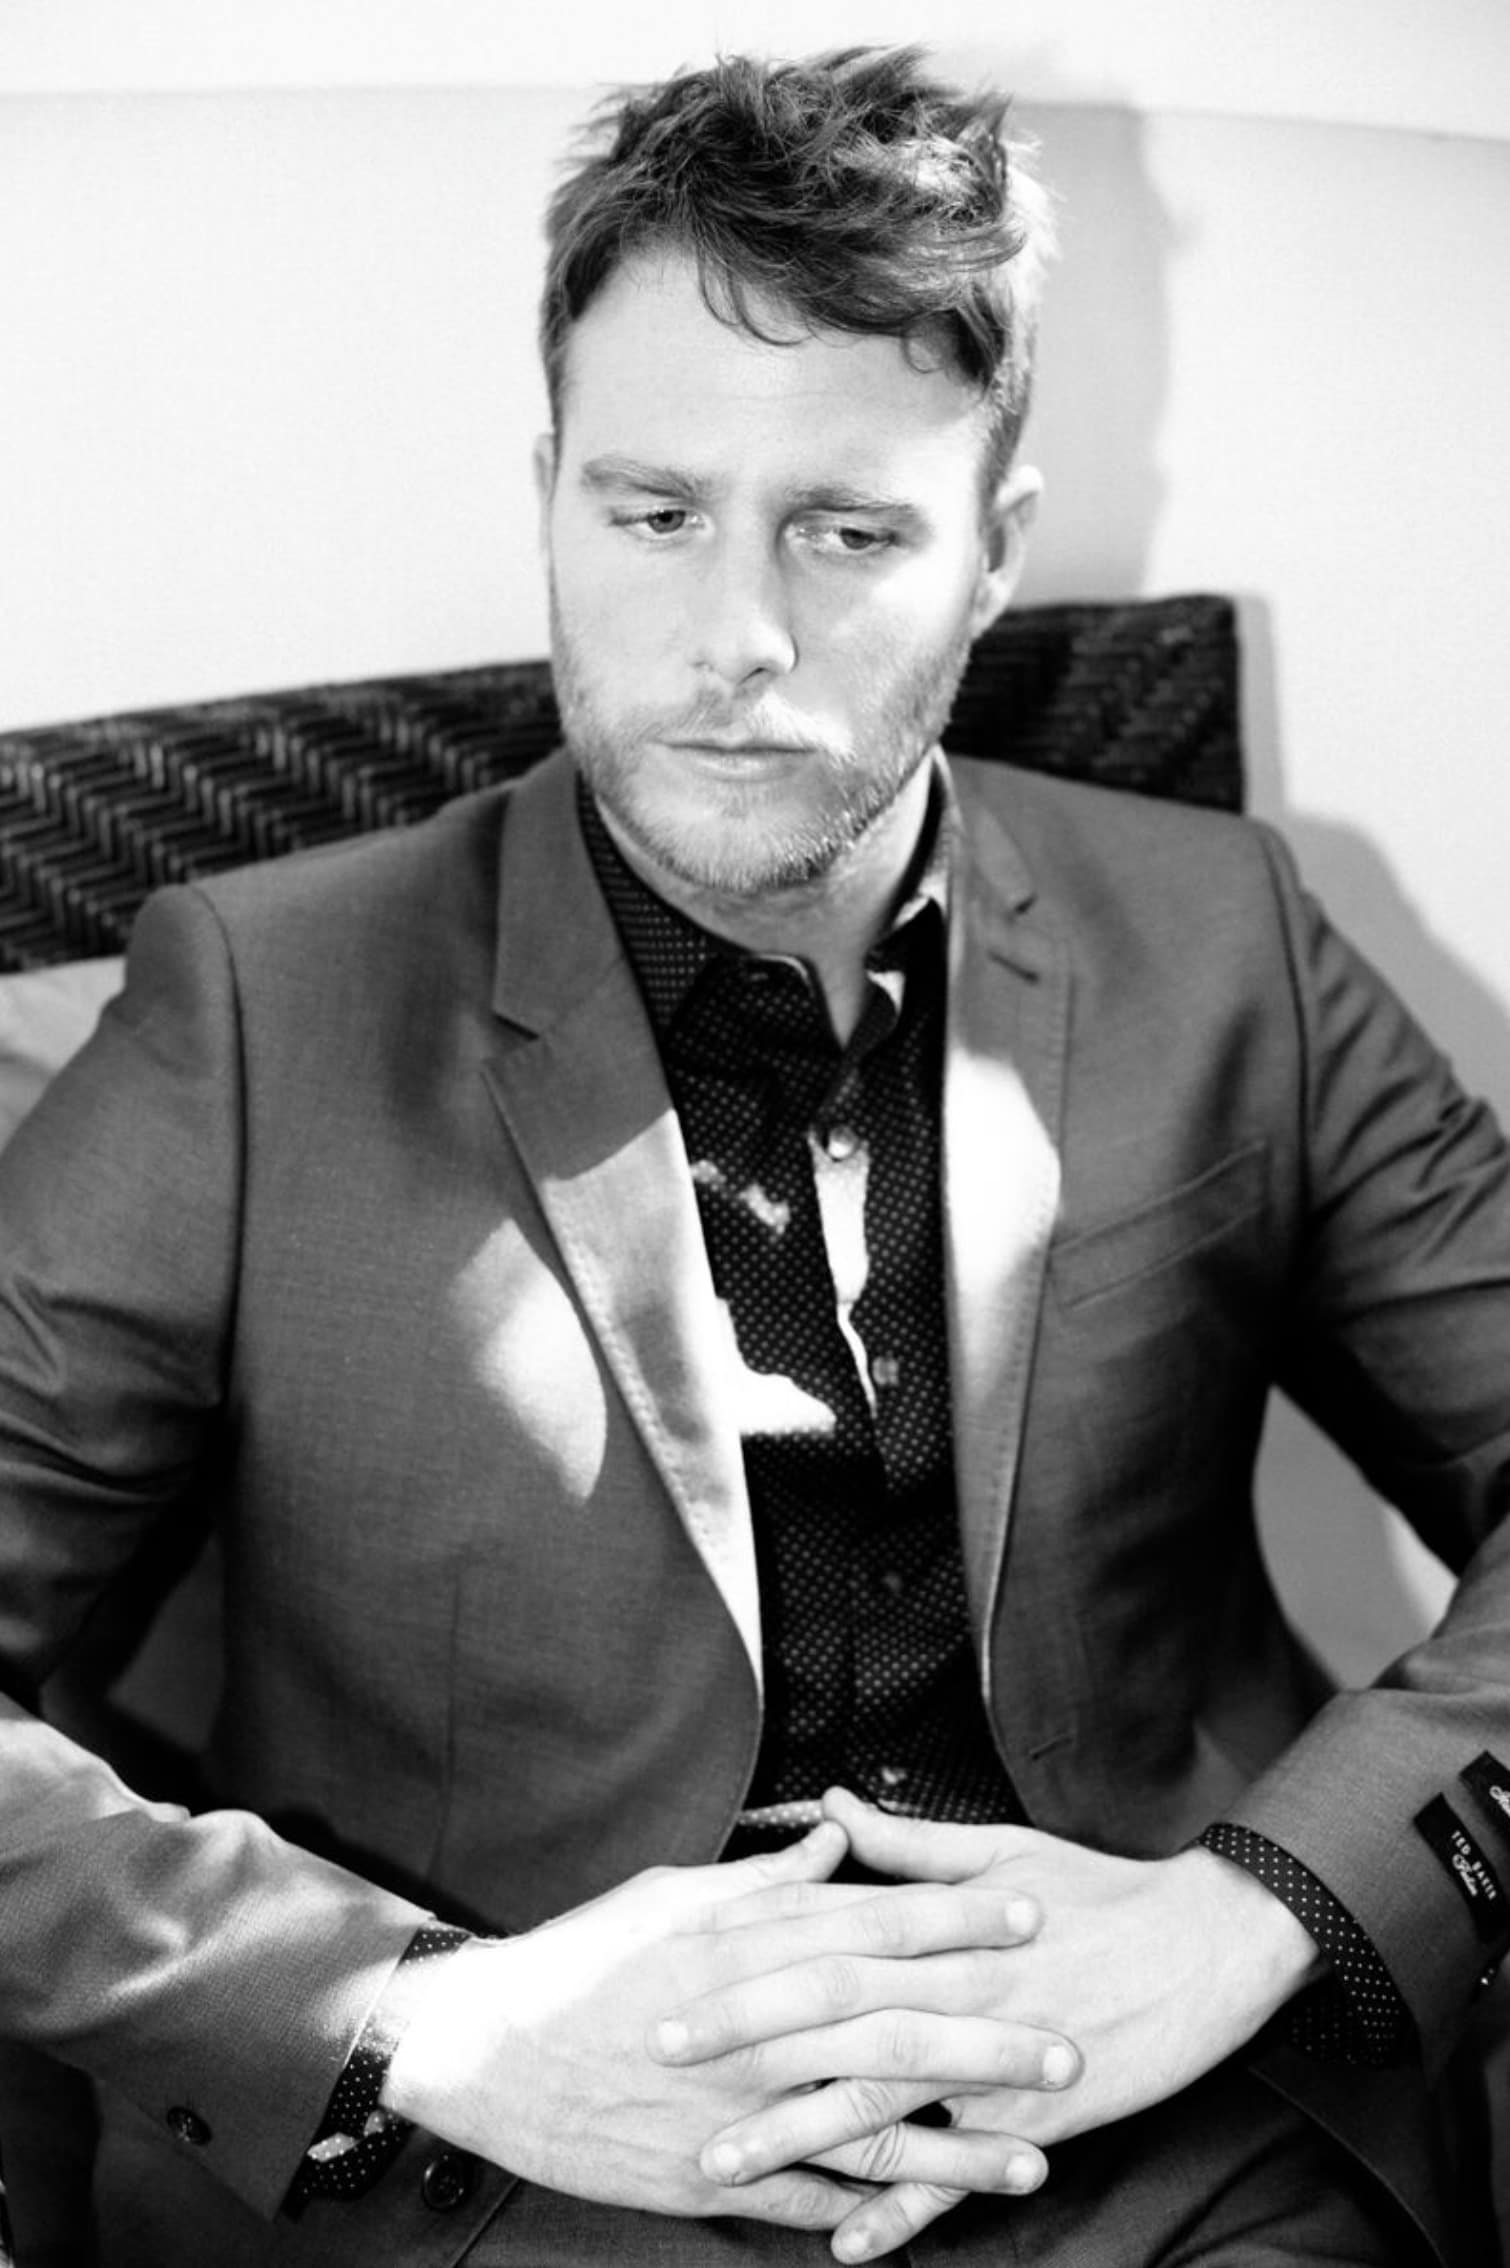 Jake McDorman photoshoot